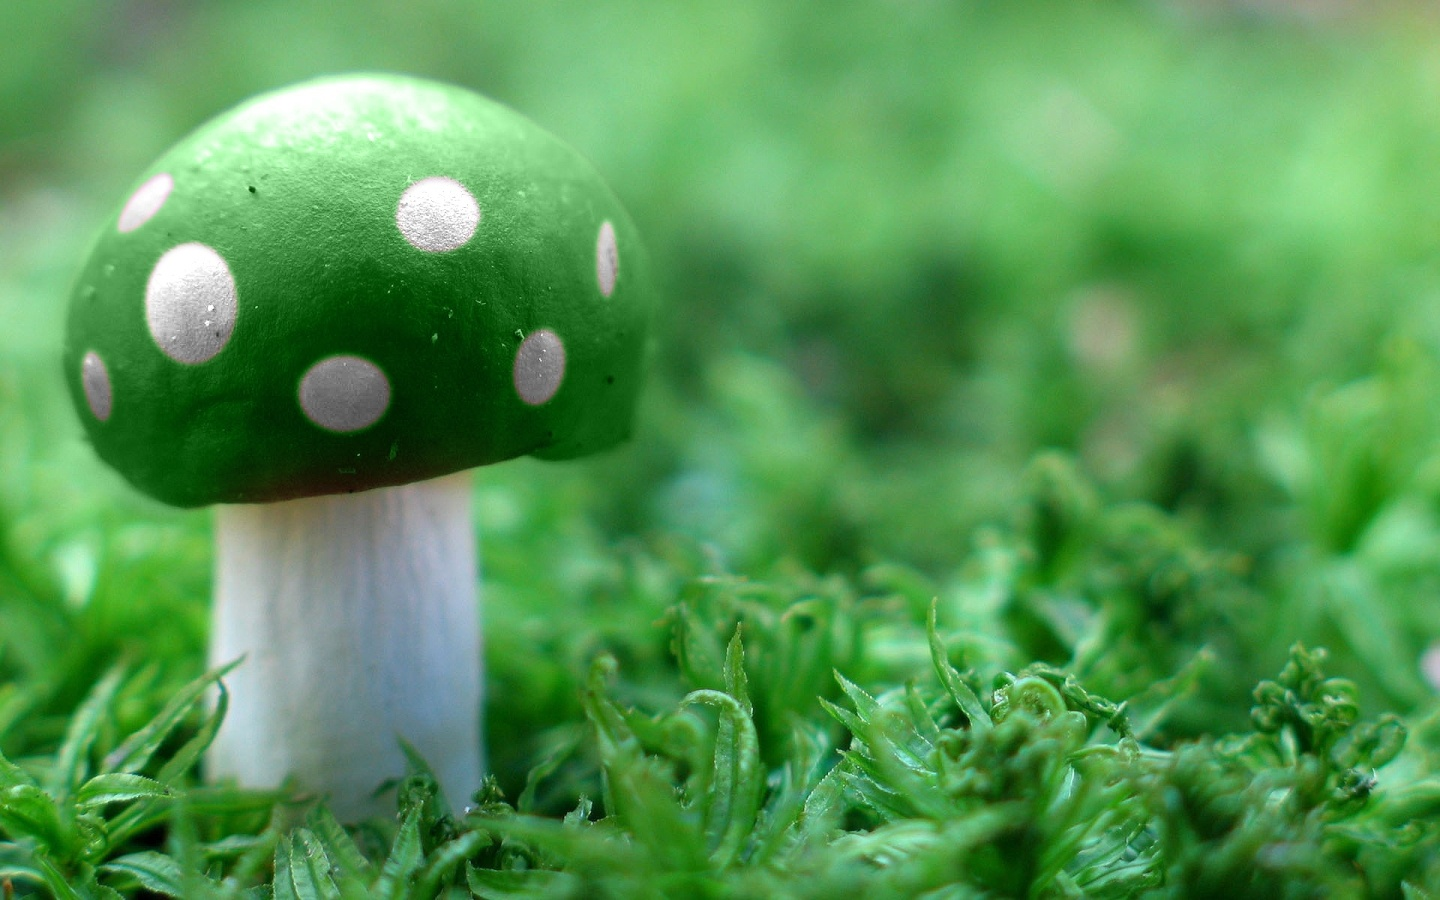 Download Green and White Mushroom Wallpaper : Widescreen : 1152 x 720 | 1280 x 800 ...